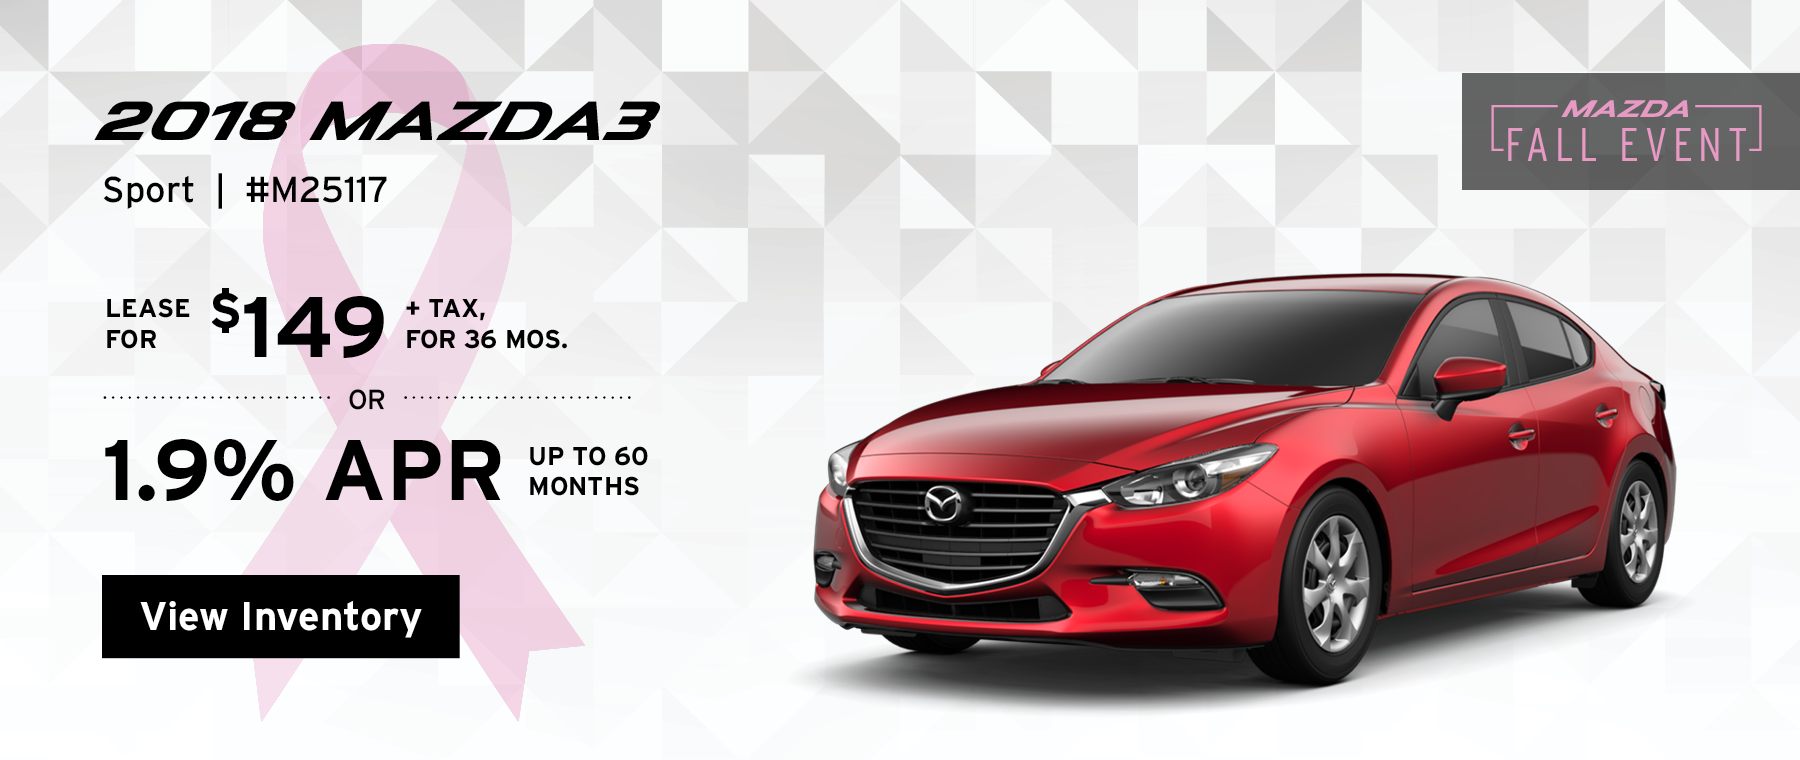 Lease the 2018 Mazda3 Sport for $149, plus tax for 36 months, or 1.9% APR up to 60 months.